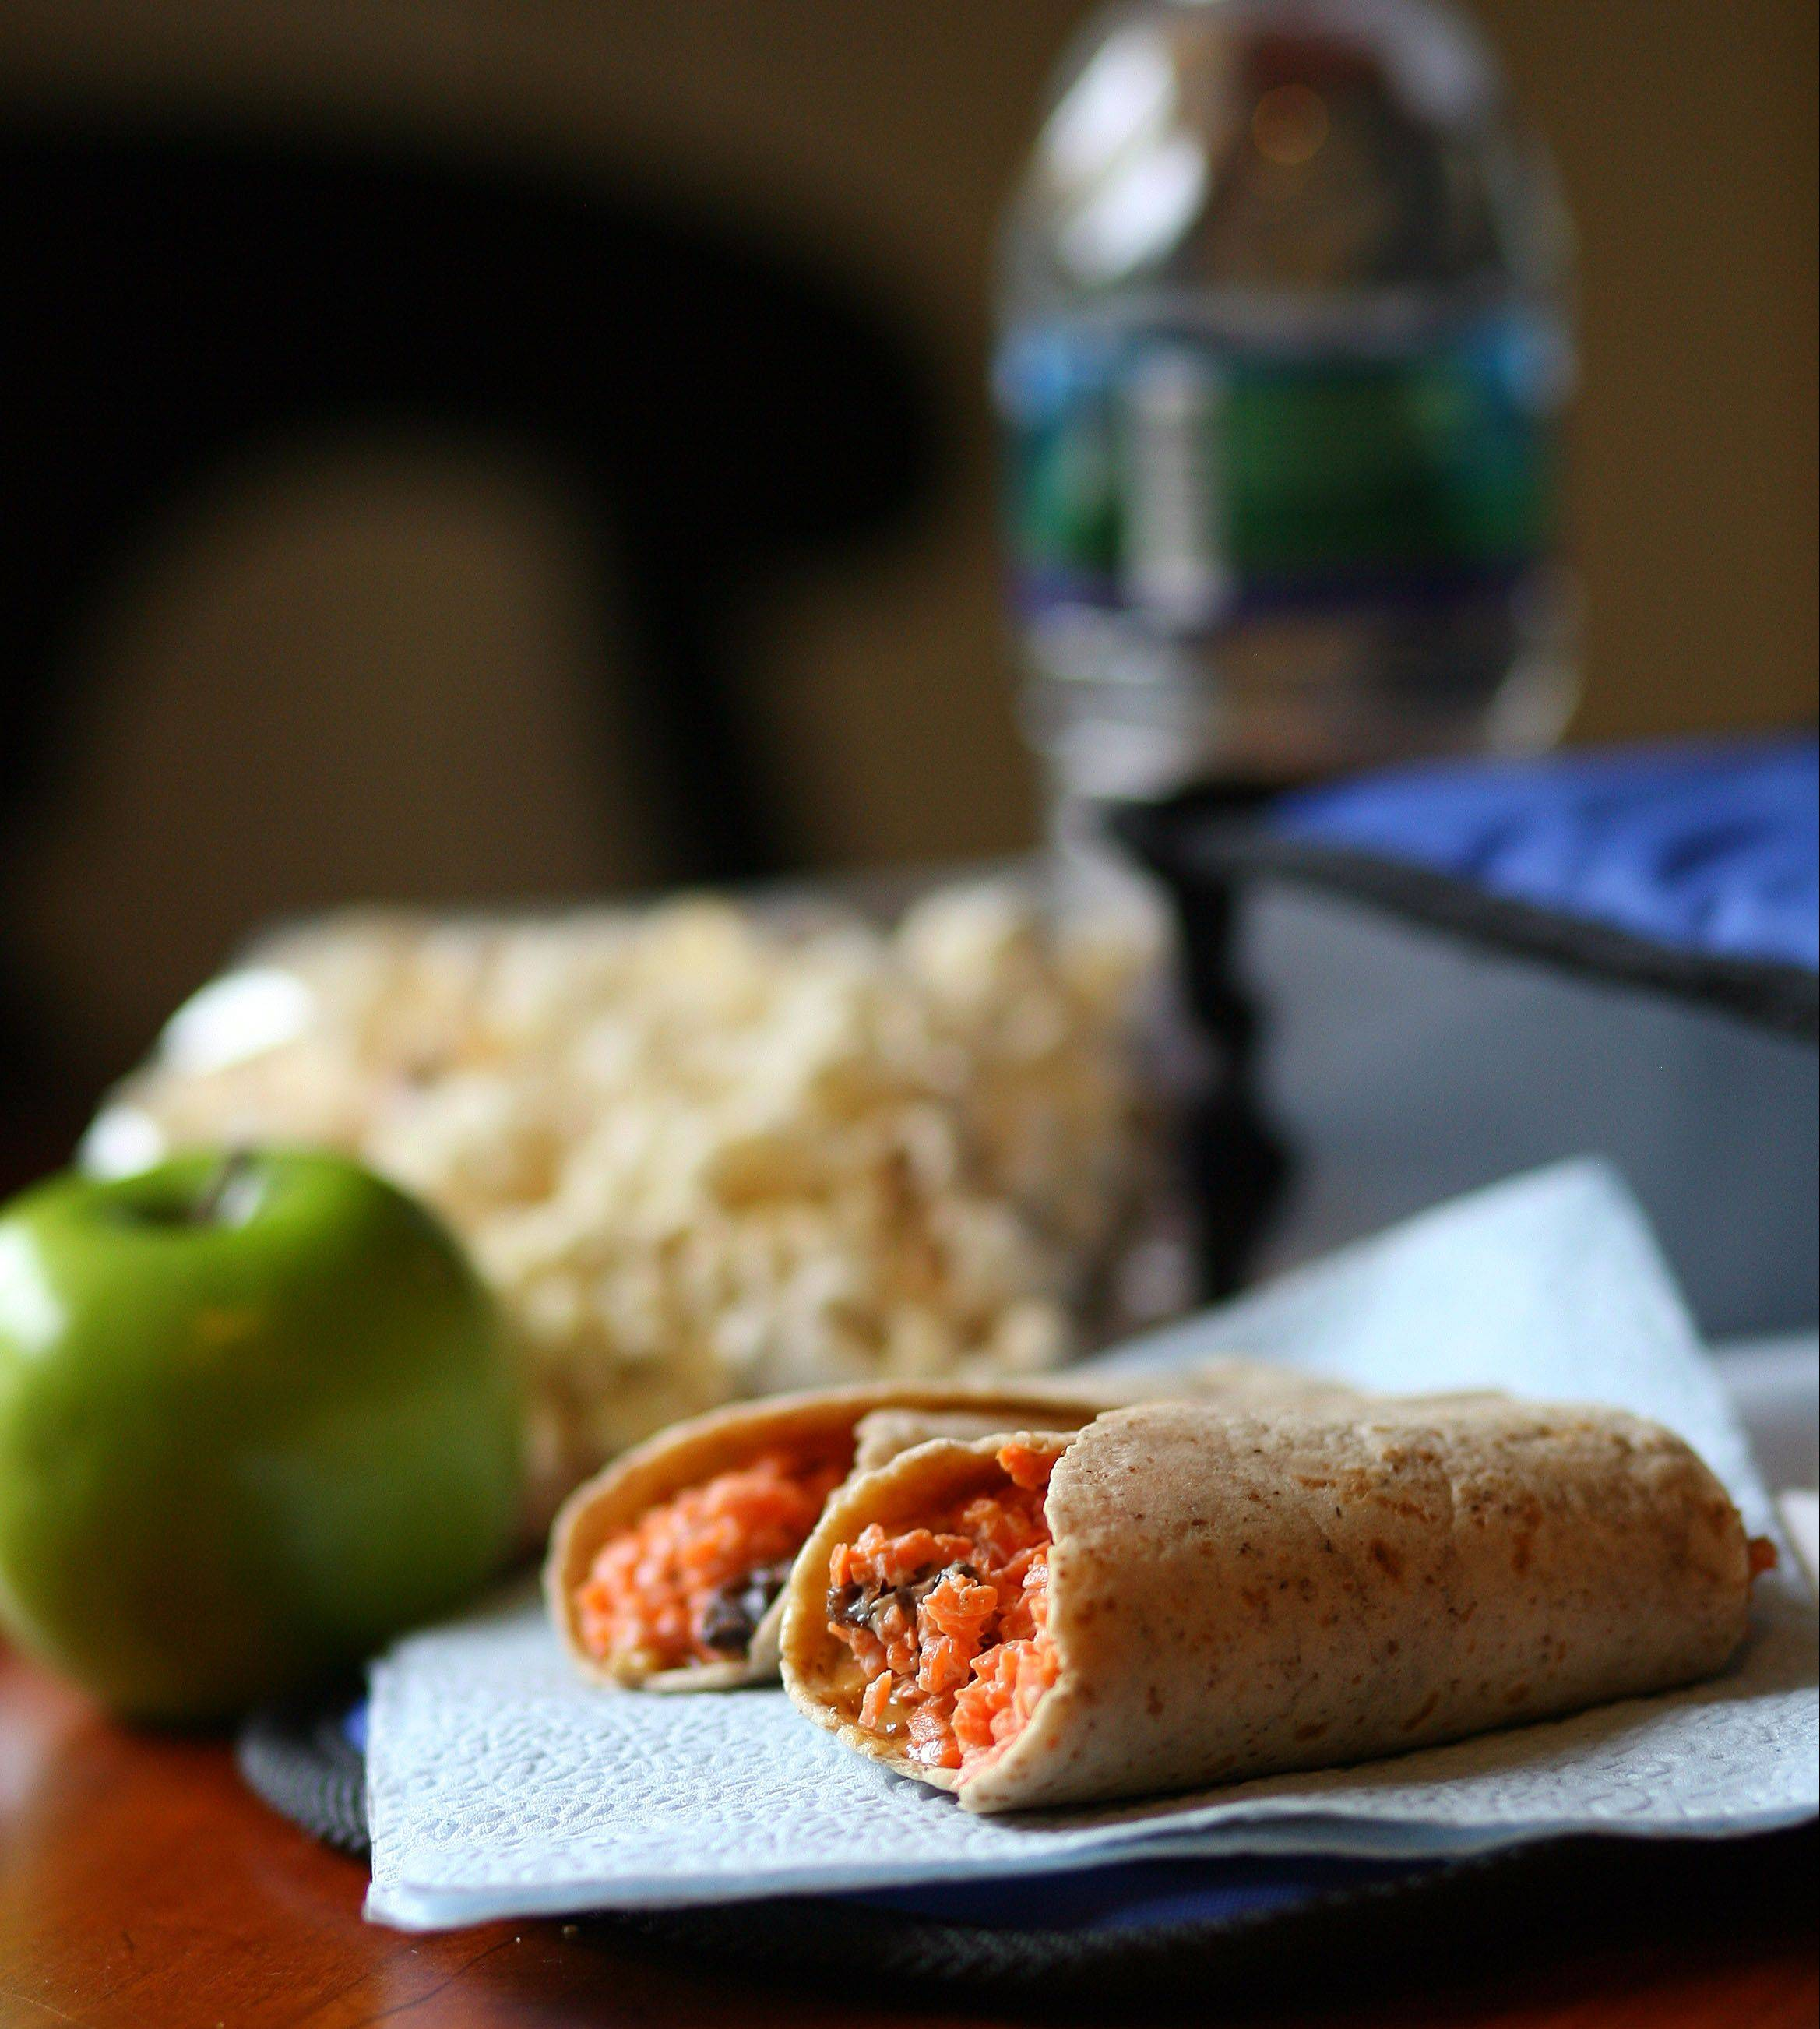 Whole-grain tortilla stuffed with carrots and raisins will refuel kids for anternoon learning.